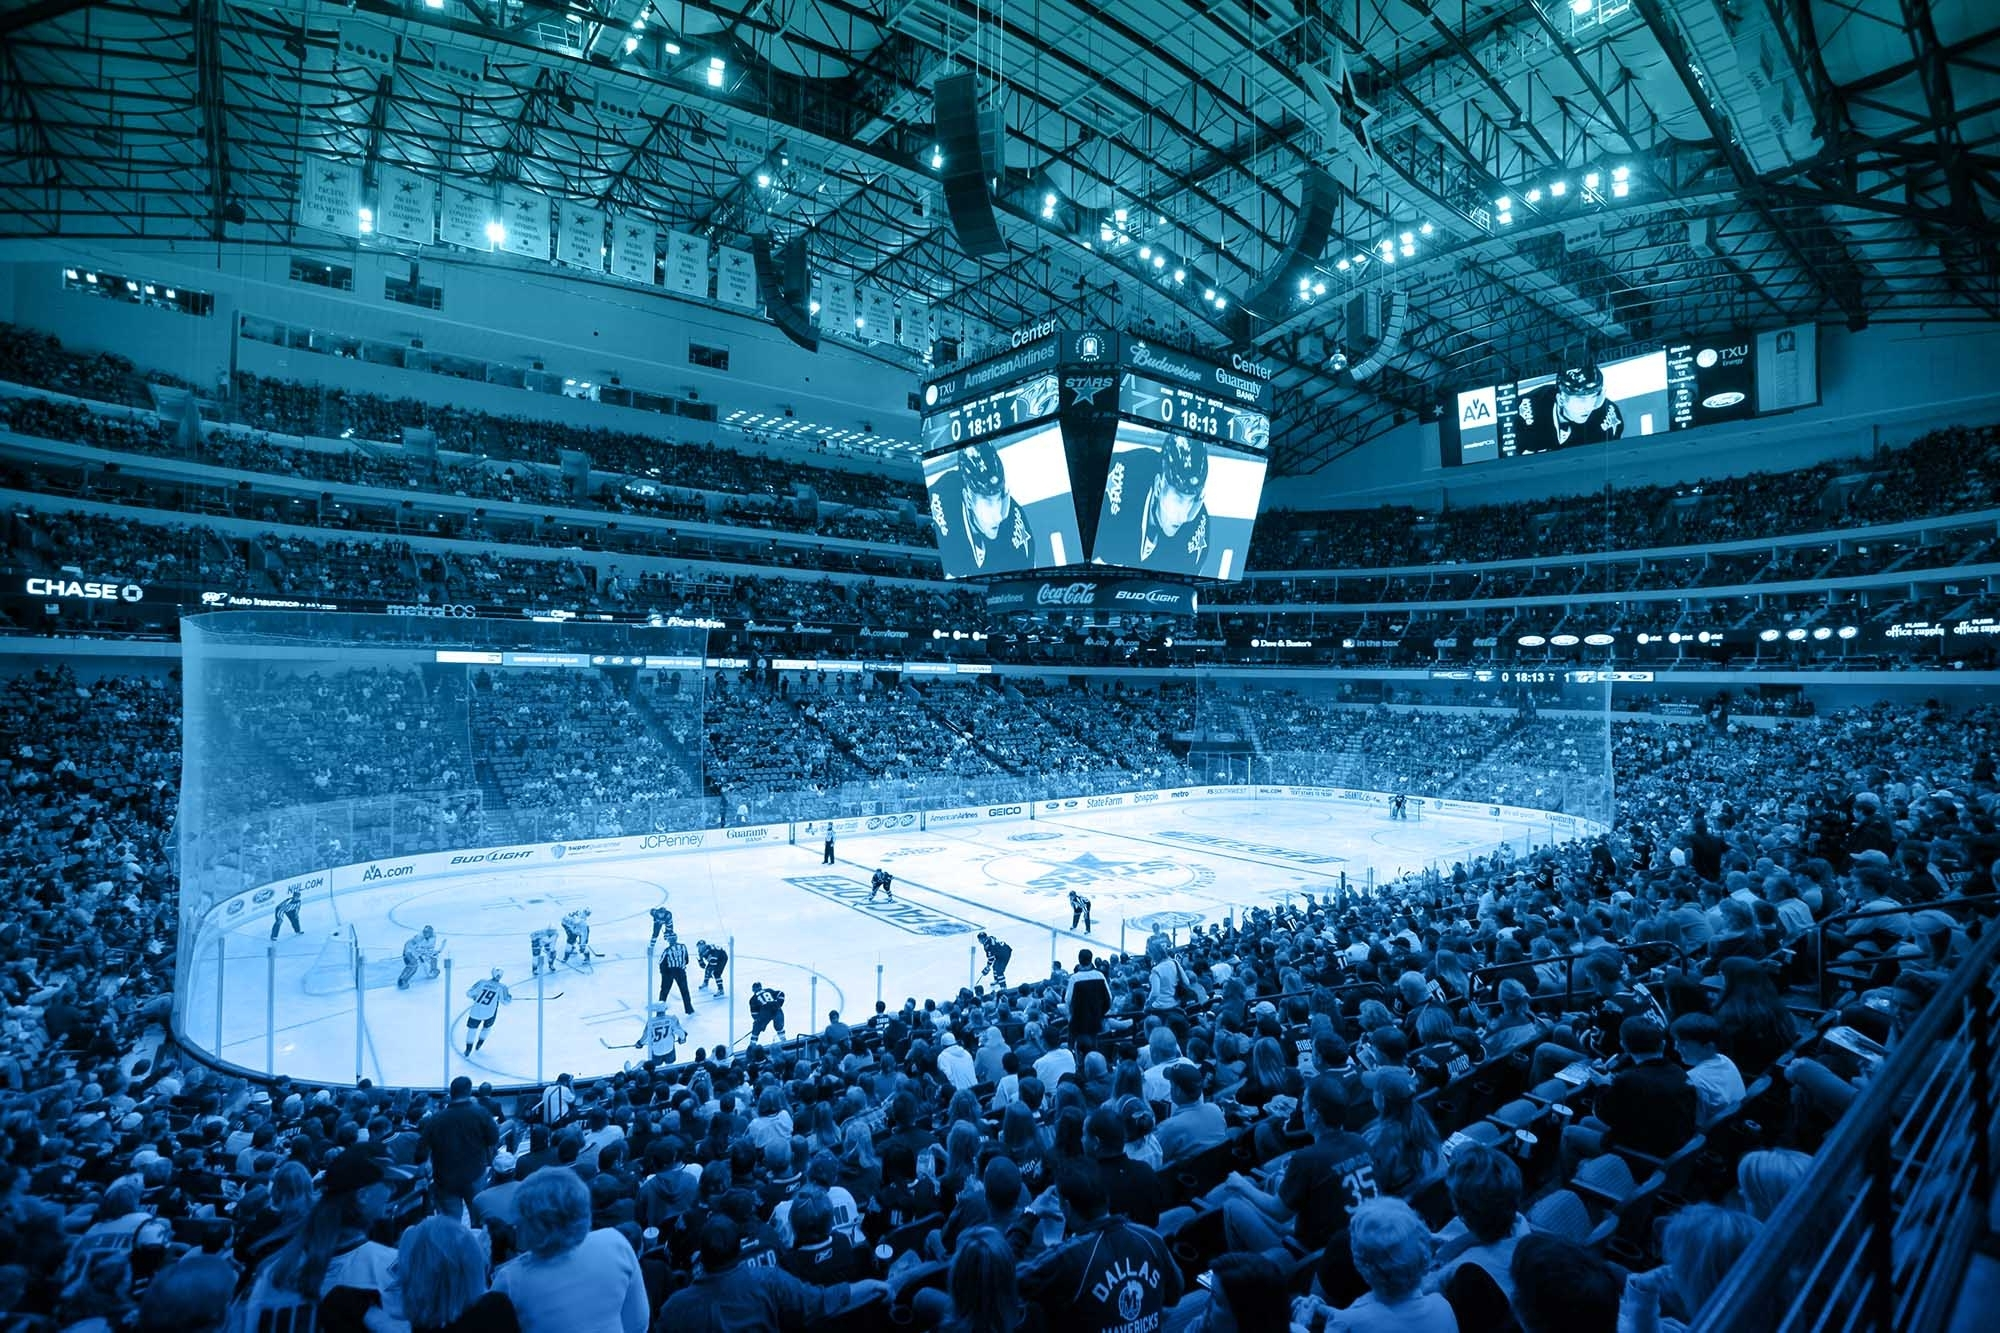 How To Choose Your Sound Solution - Arena Digest pertaining to American Airlines Arena Address Miami Fl